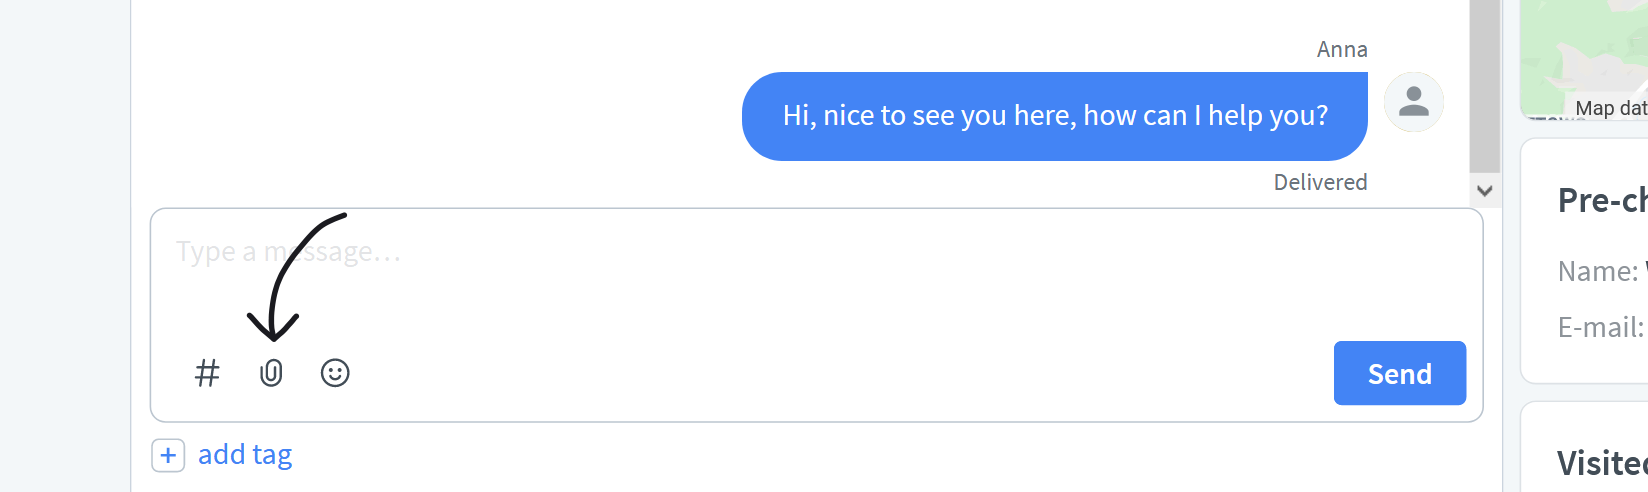 Send files over LiveChat